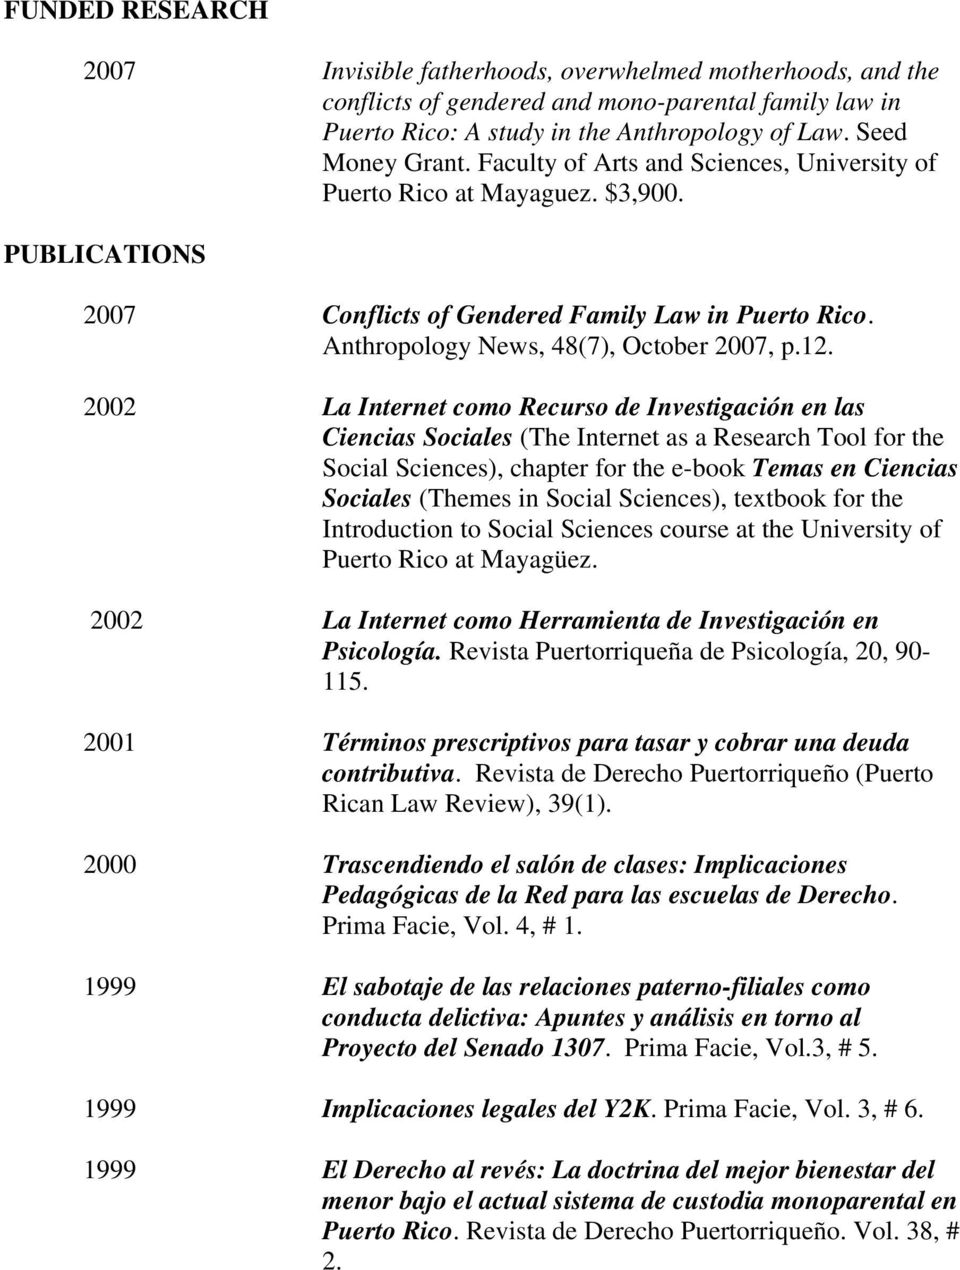 2002 La Internet como Recurso de Investigación en las Ciencias Sociales (The Internet as a Research Tool for the Social Sciences), chapter for the e-book Temas en Ciencias Sociales (Themes in Social